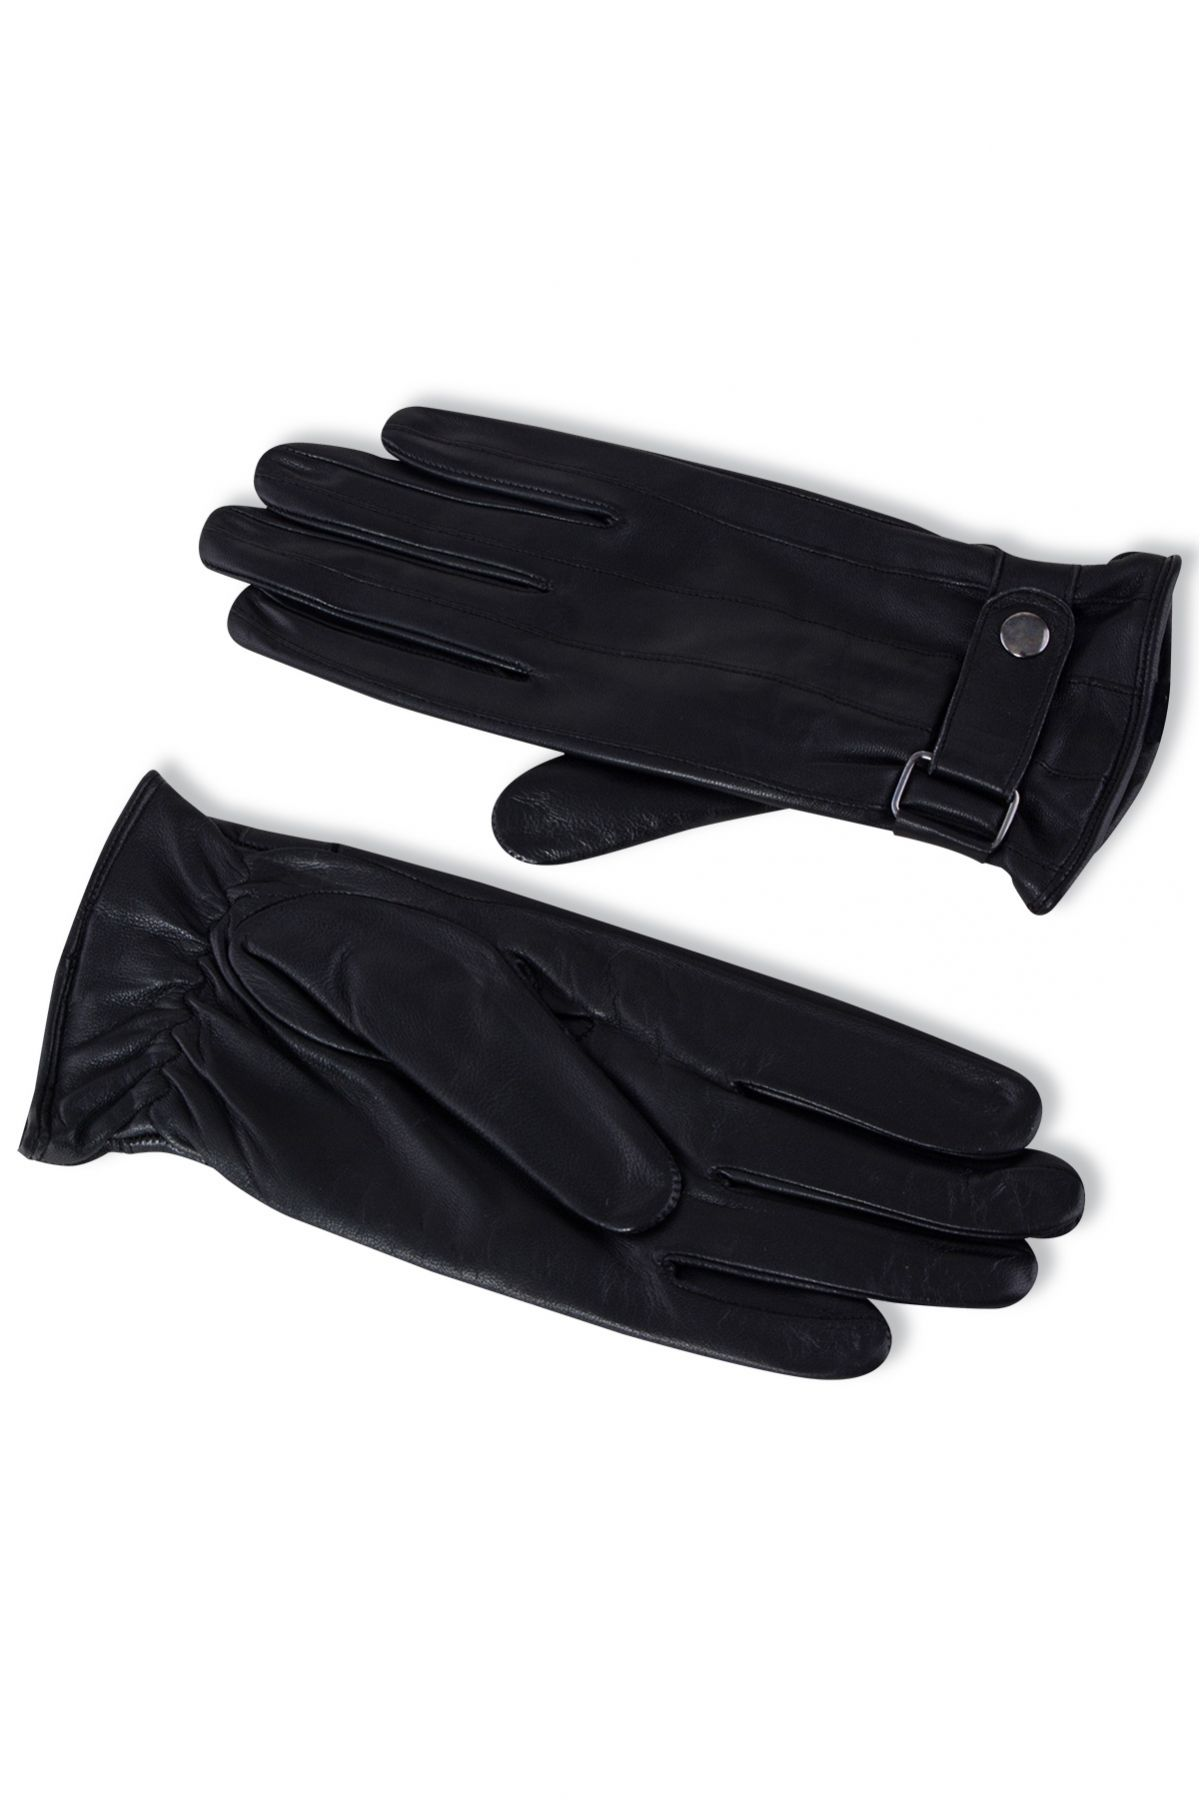 Pegia Men's Leather Gloves Decorated With Strap 19EE03 Black